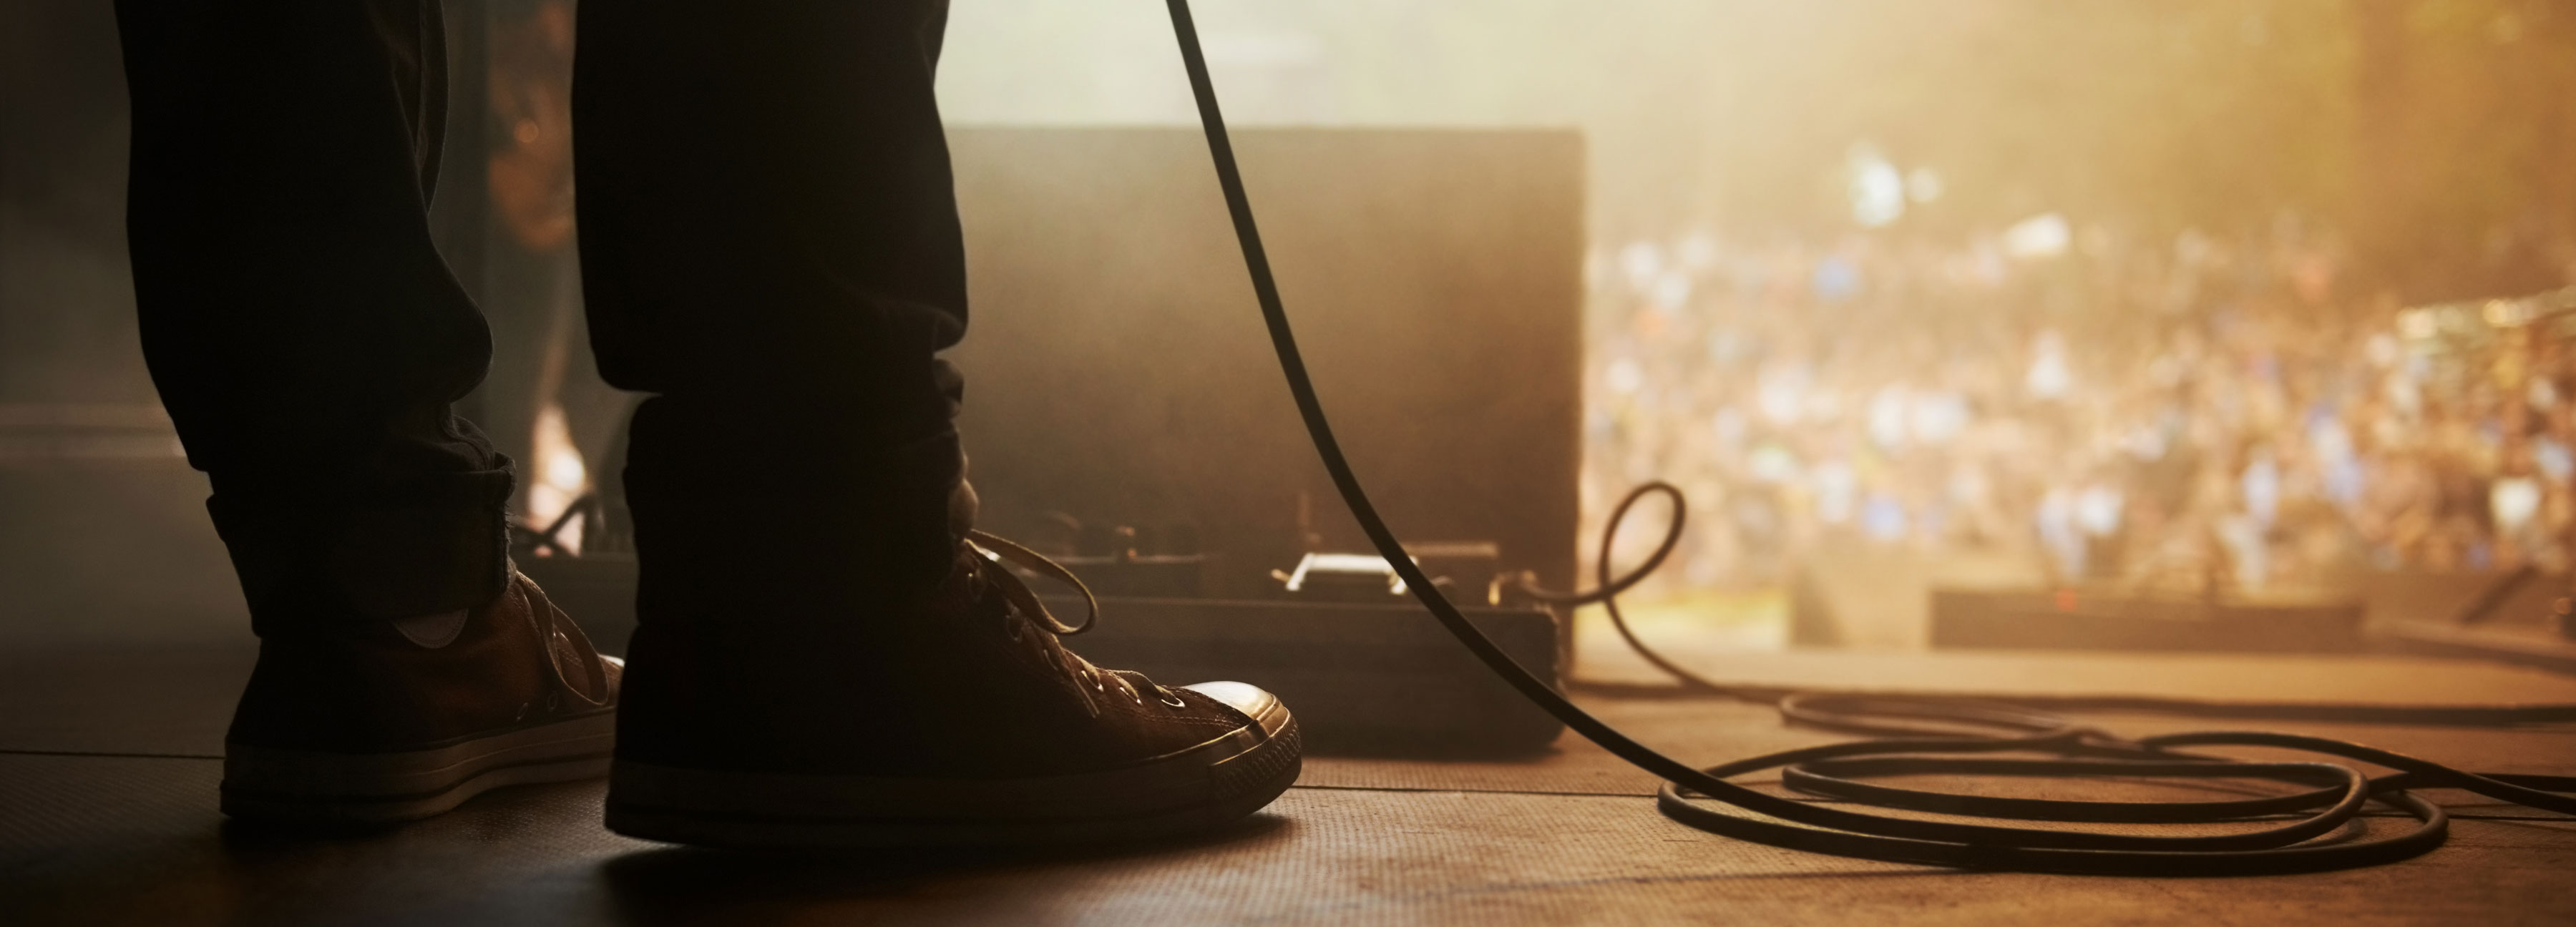 Musician standing on stage